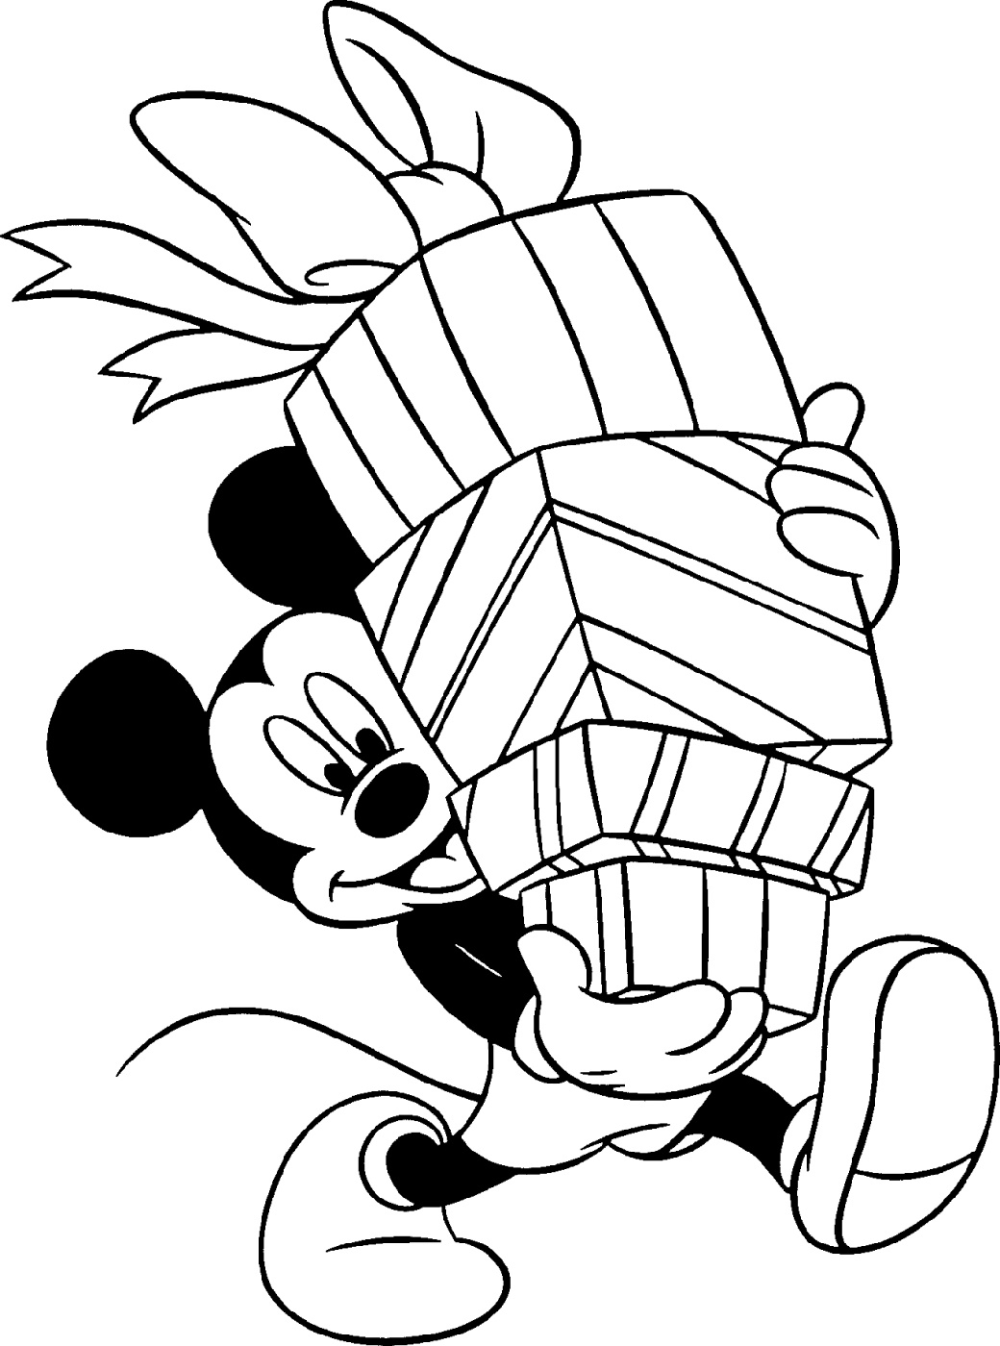 Mickey Mouse Christmas Coloring Pages Mickey Mouse Coloring Pages Birthday Coloring Pages Disney Coloring Pages